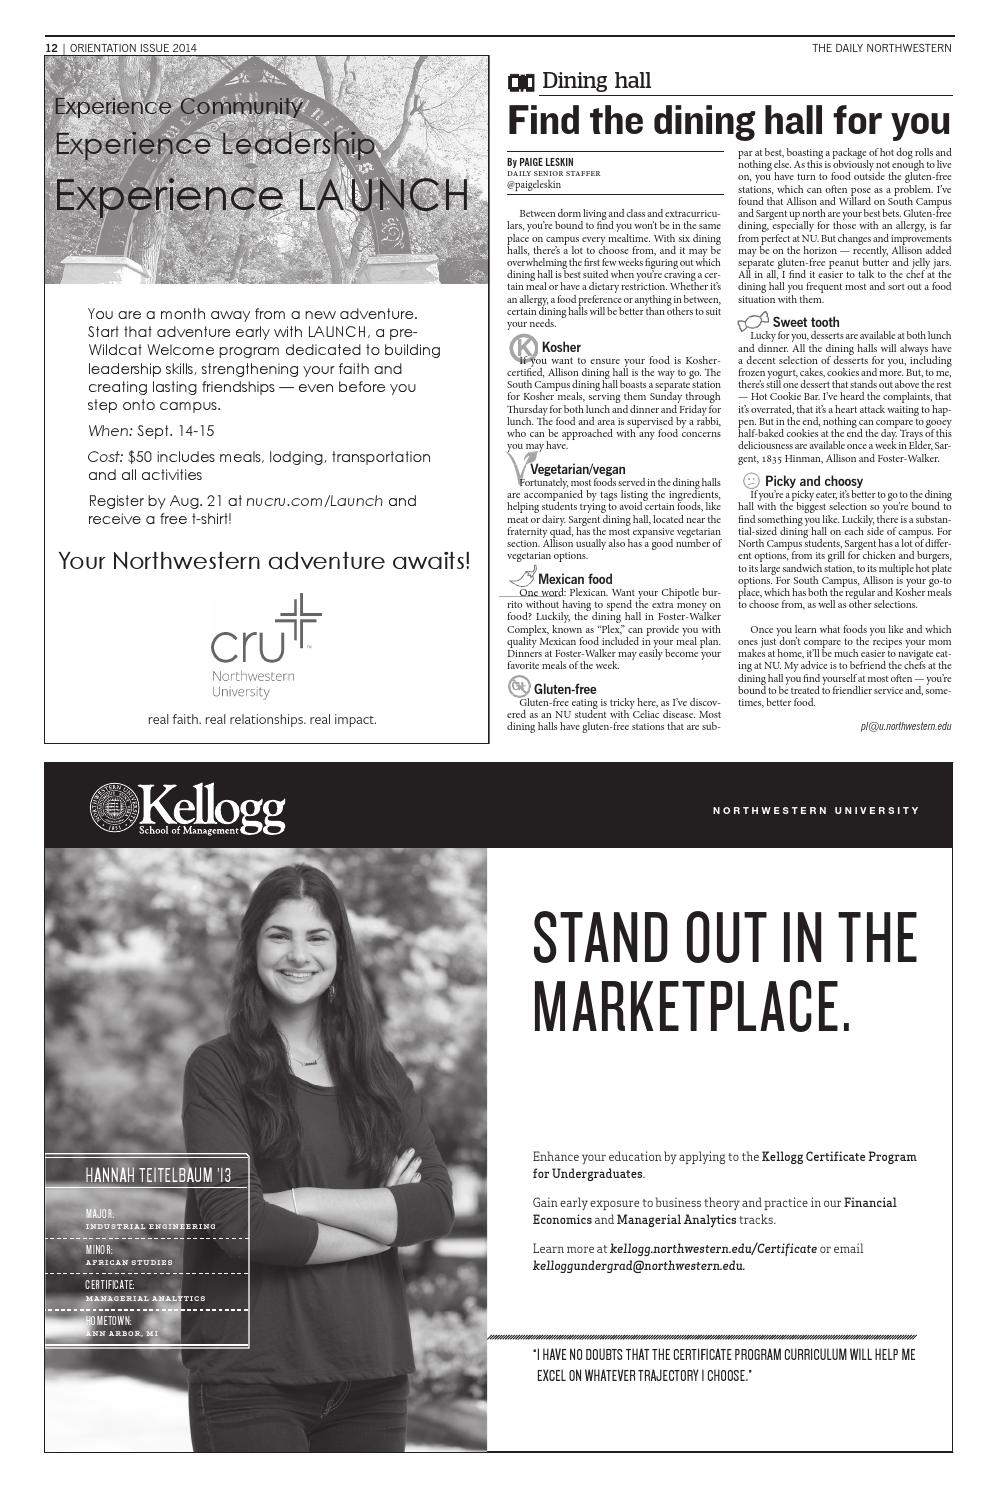 The Daily Northwestern Orientation Issue By The Daily Northwestern